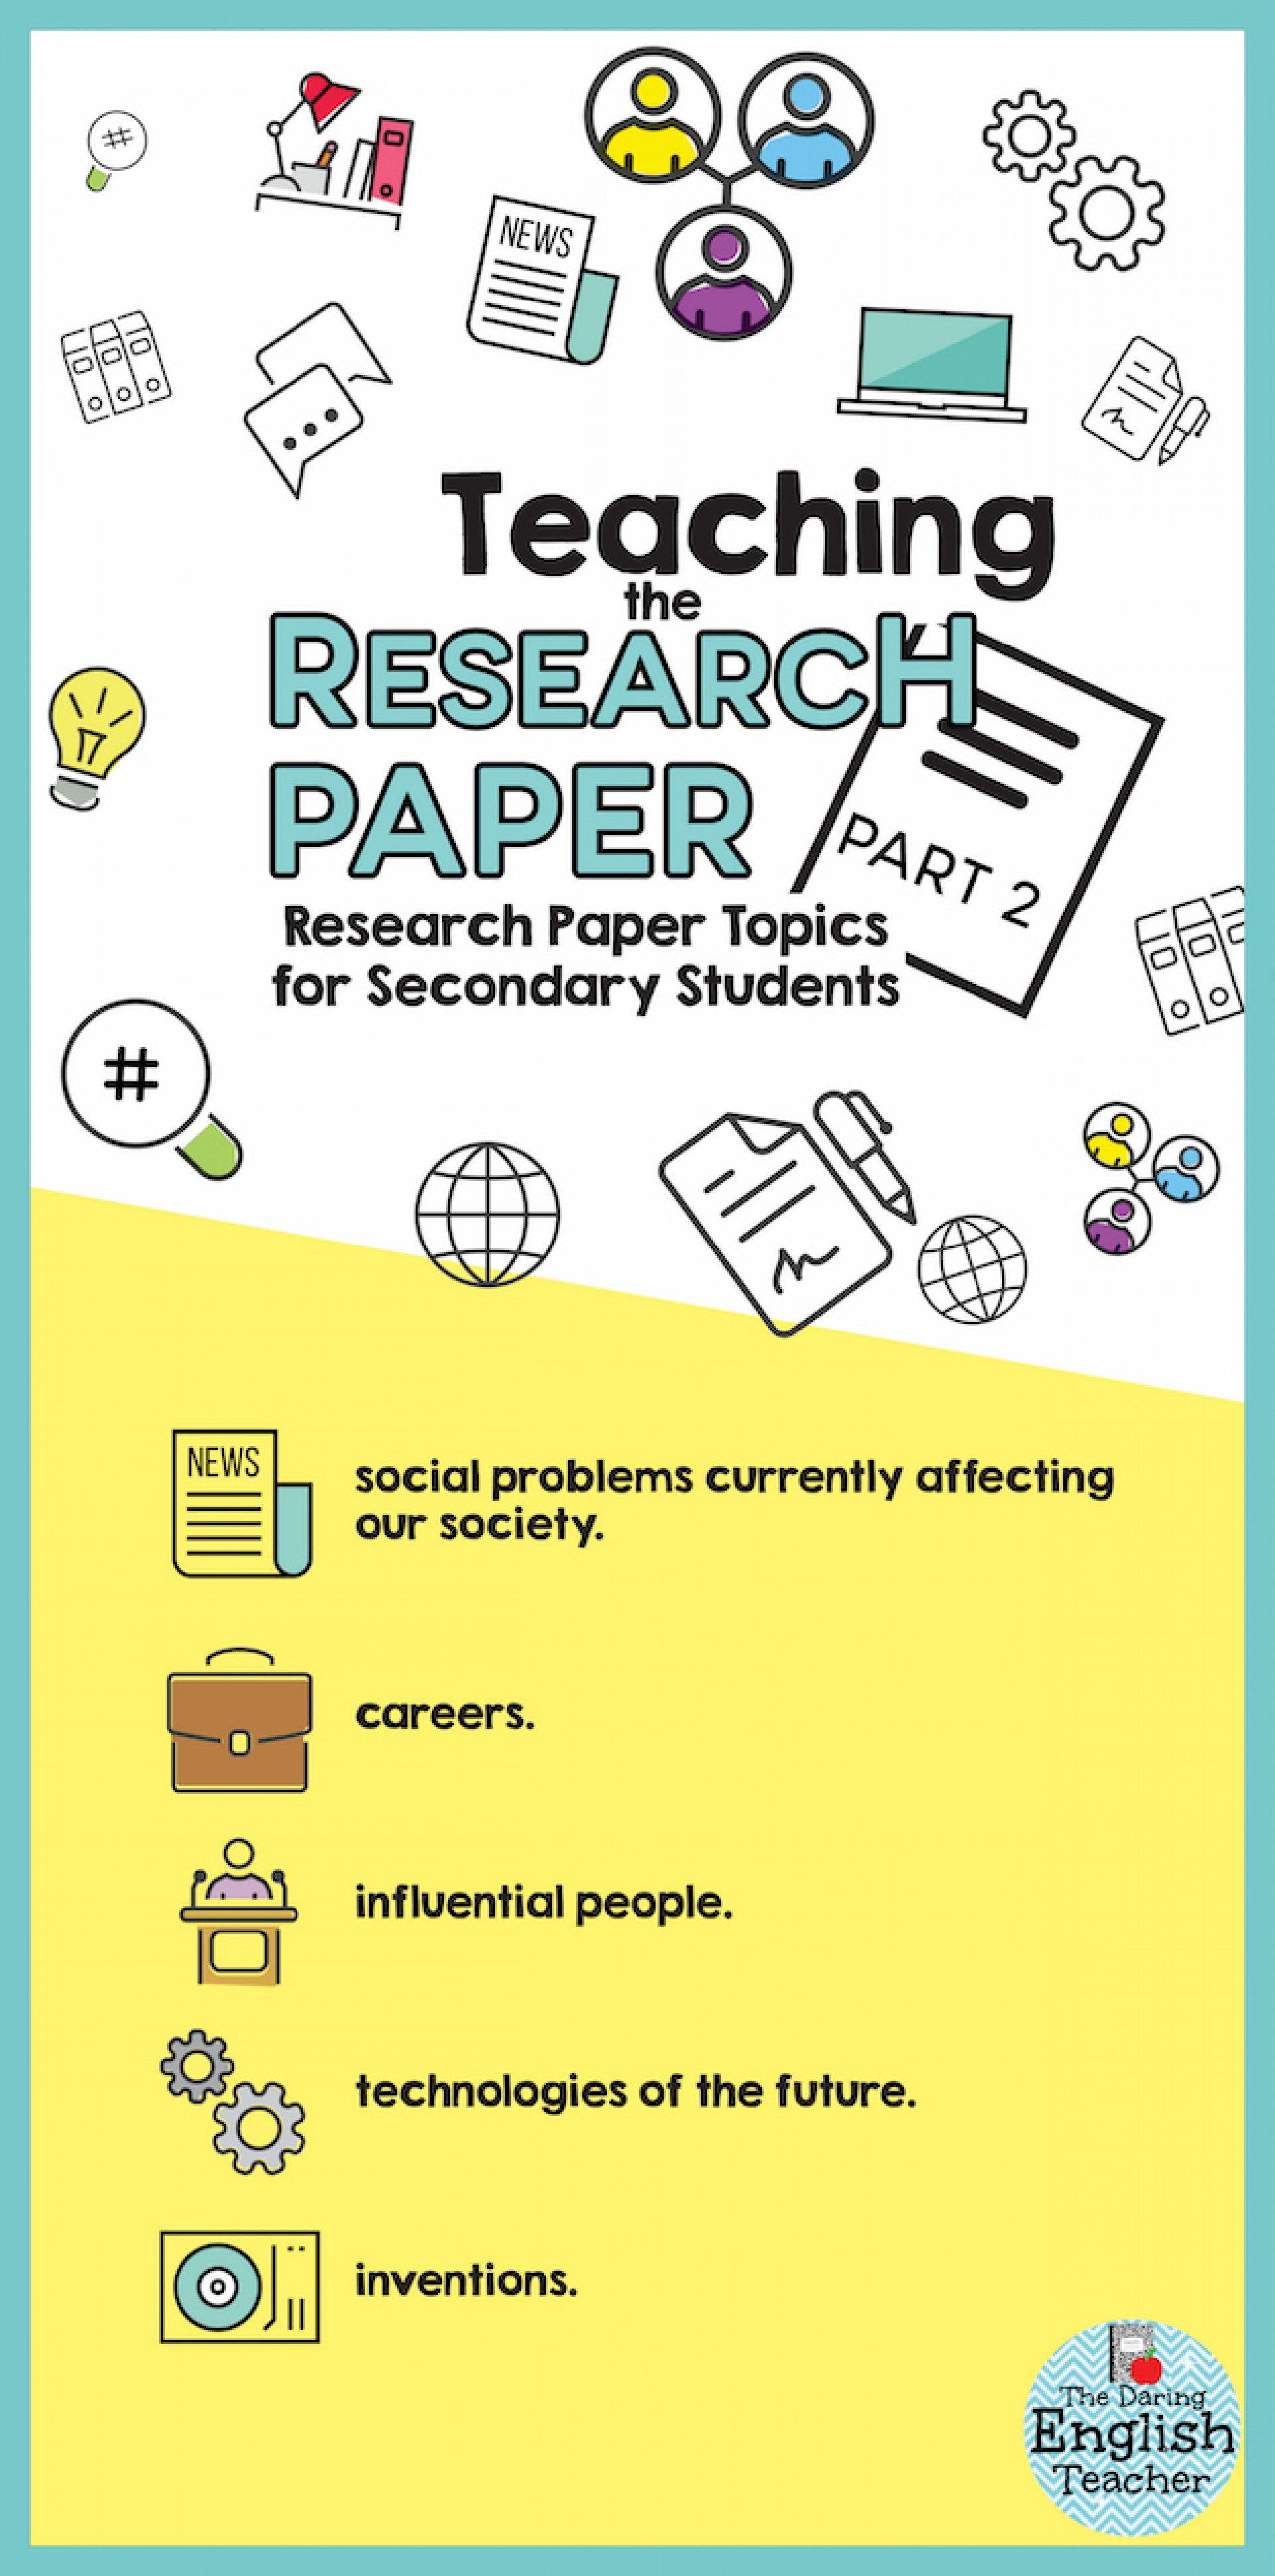 020 Infographic2bp22b2 Research Paper Topic For Unusual A About Business Topics 2018 In Psychology 1920